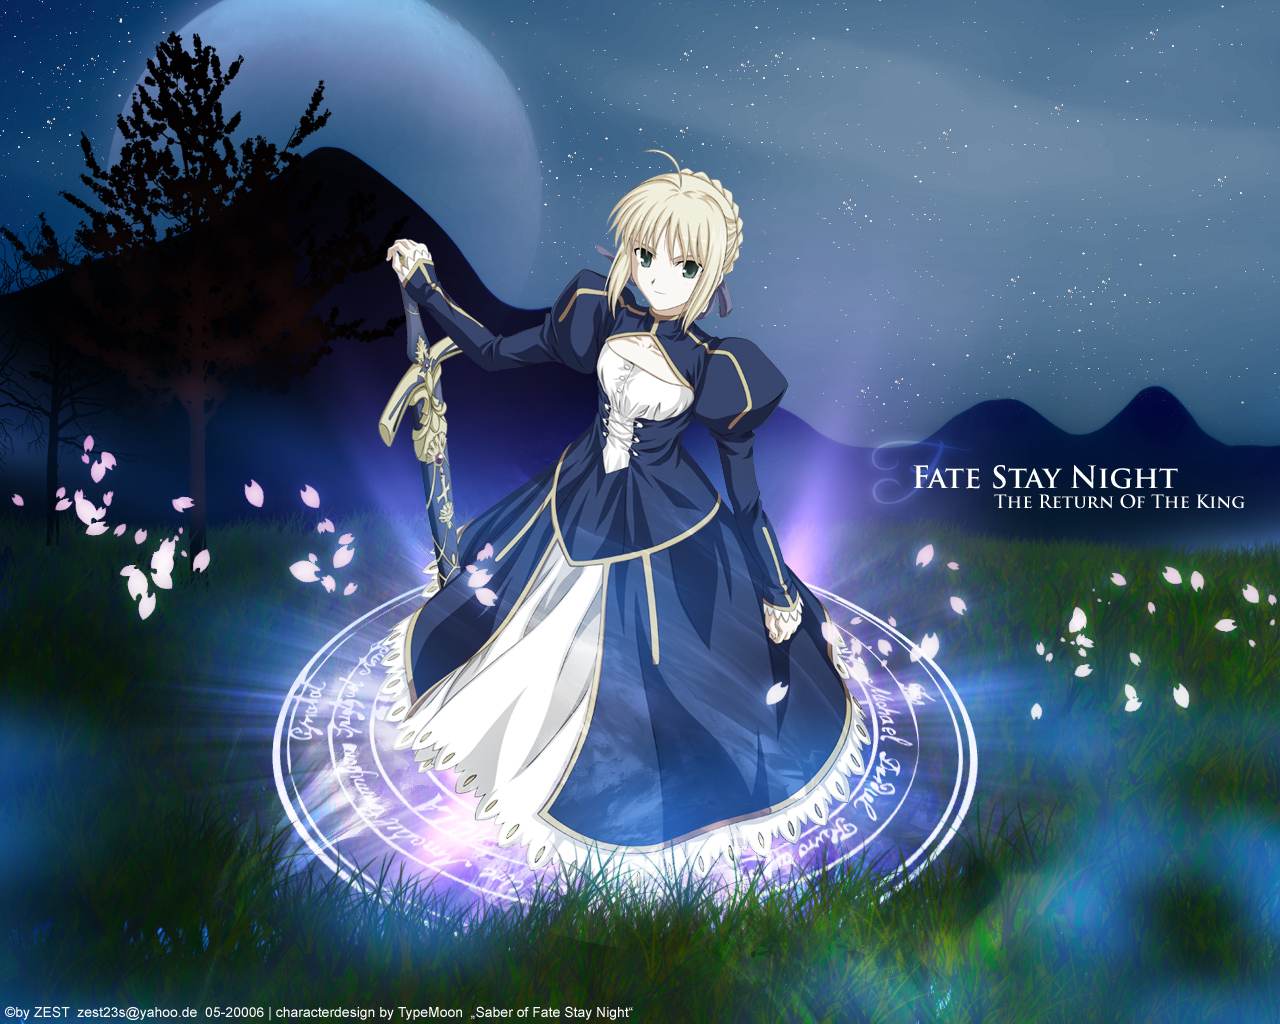 Fate Stay Night : Sexy Warrior Anime Manga Wallpaper 01